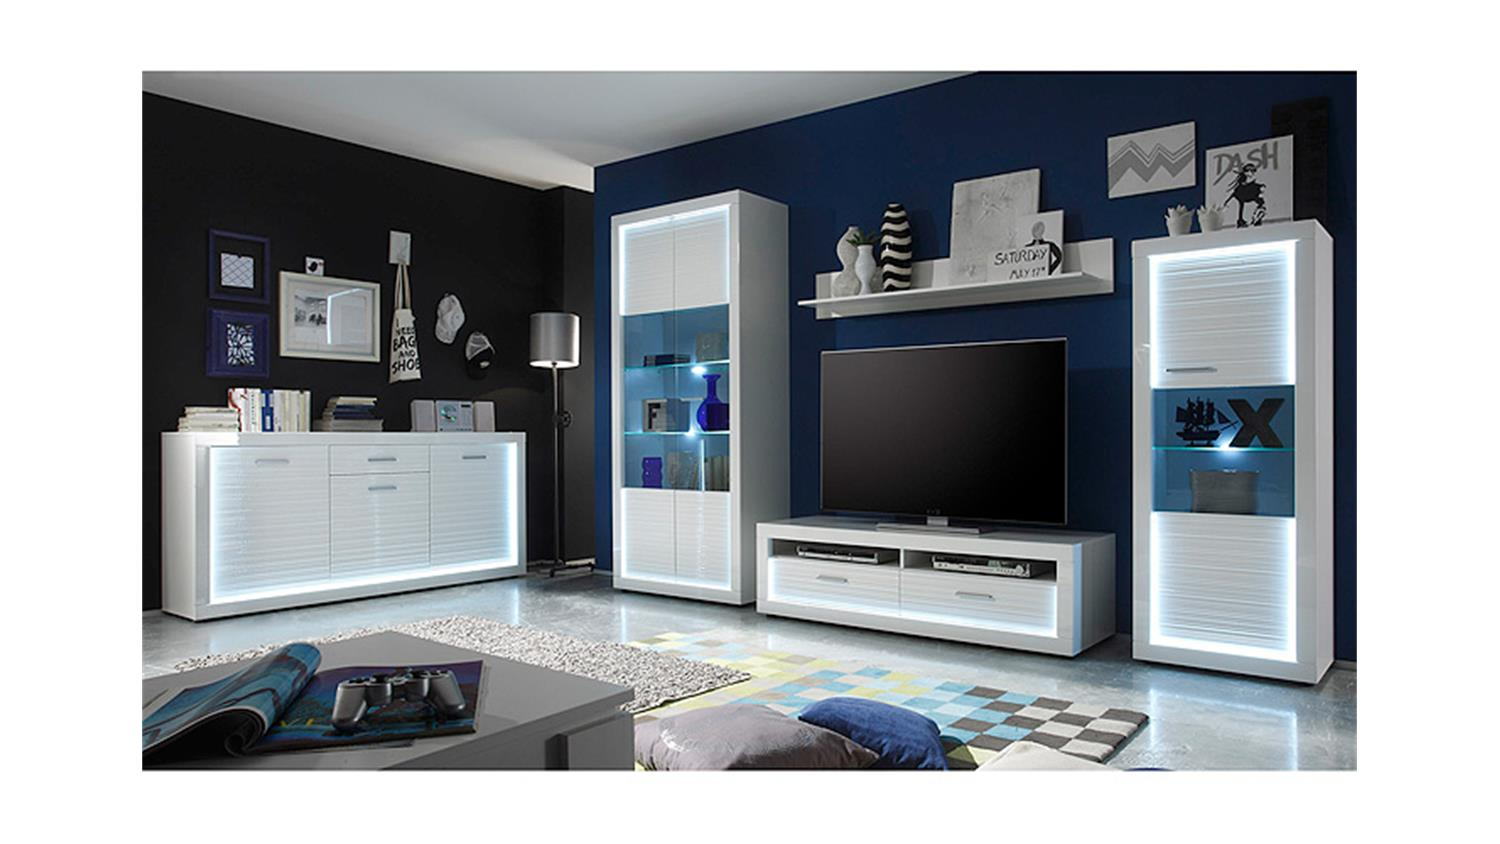 wohnwand 1 starlight wei hochglanz rillenoptik inkl led. Black Bedroom Furniture Sets. Home Design Ideas